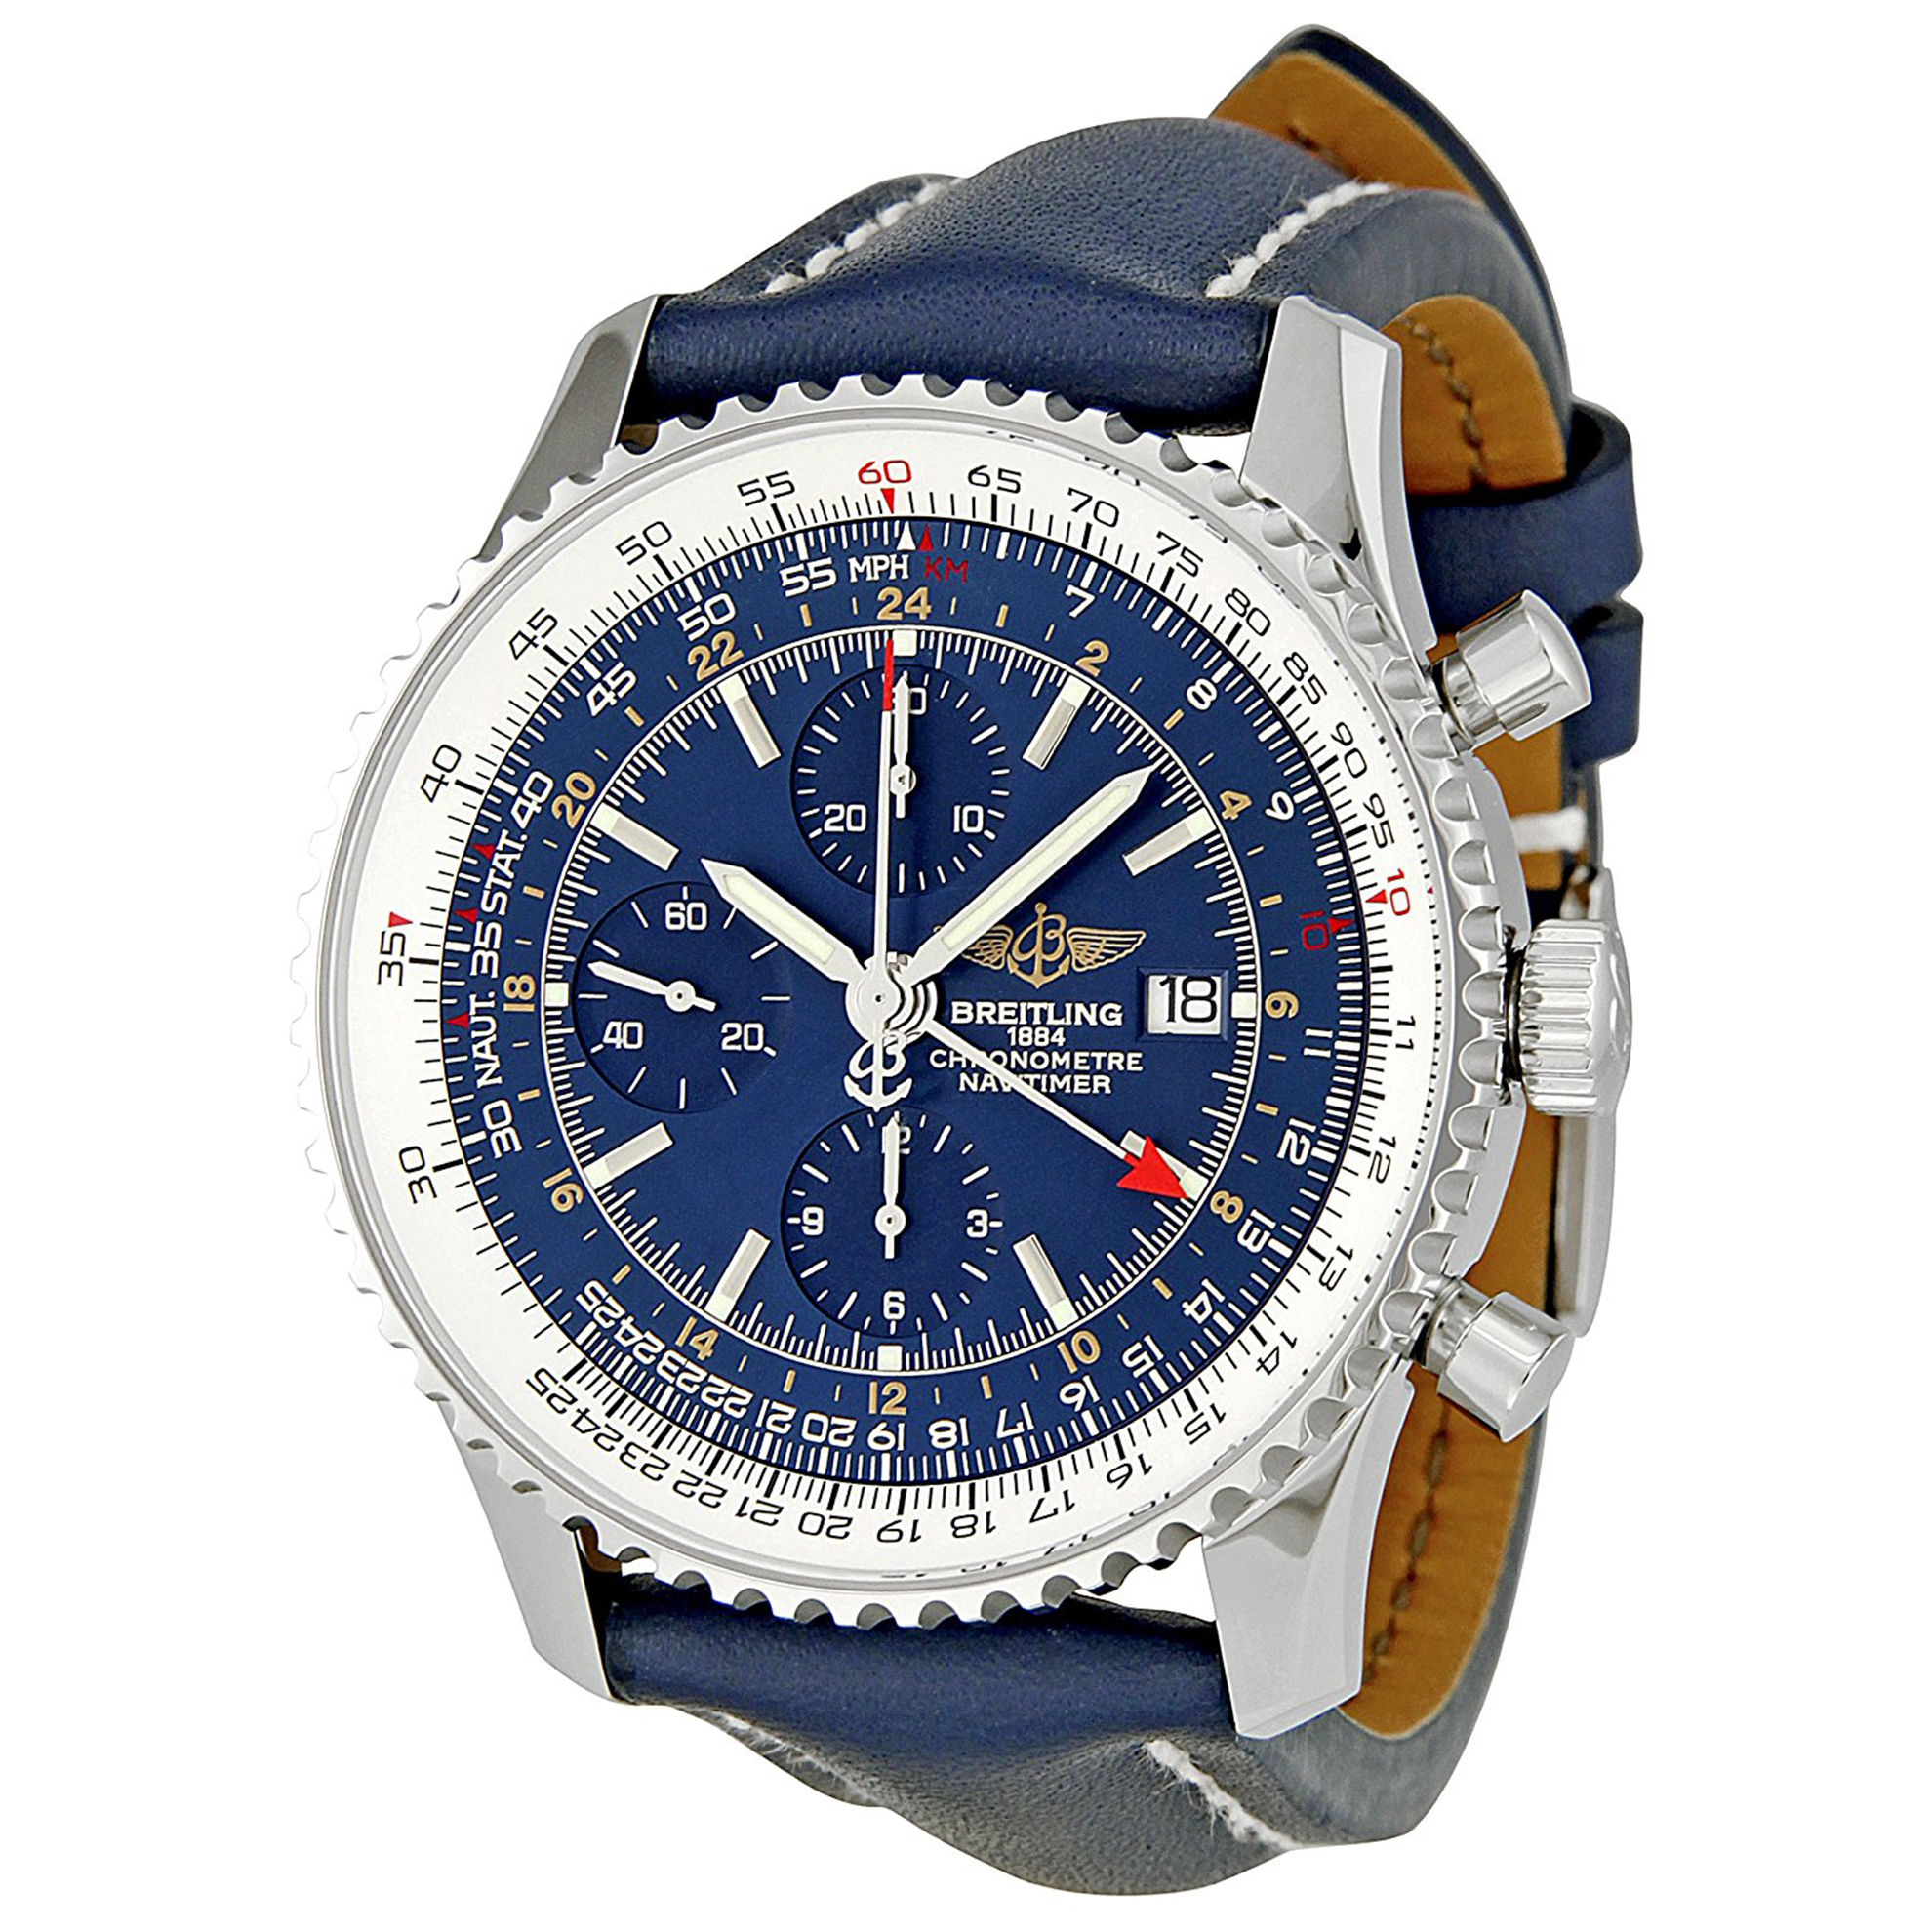 Breitling A2432212_C651DL Breitling Navitimer Blue Chronograph Blue Leather Strap